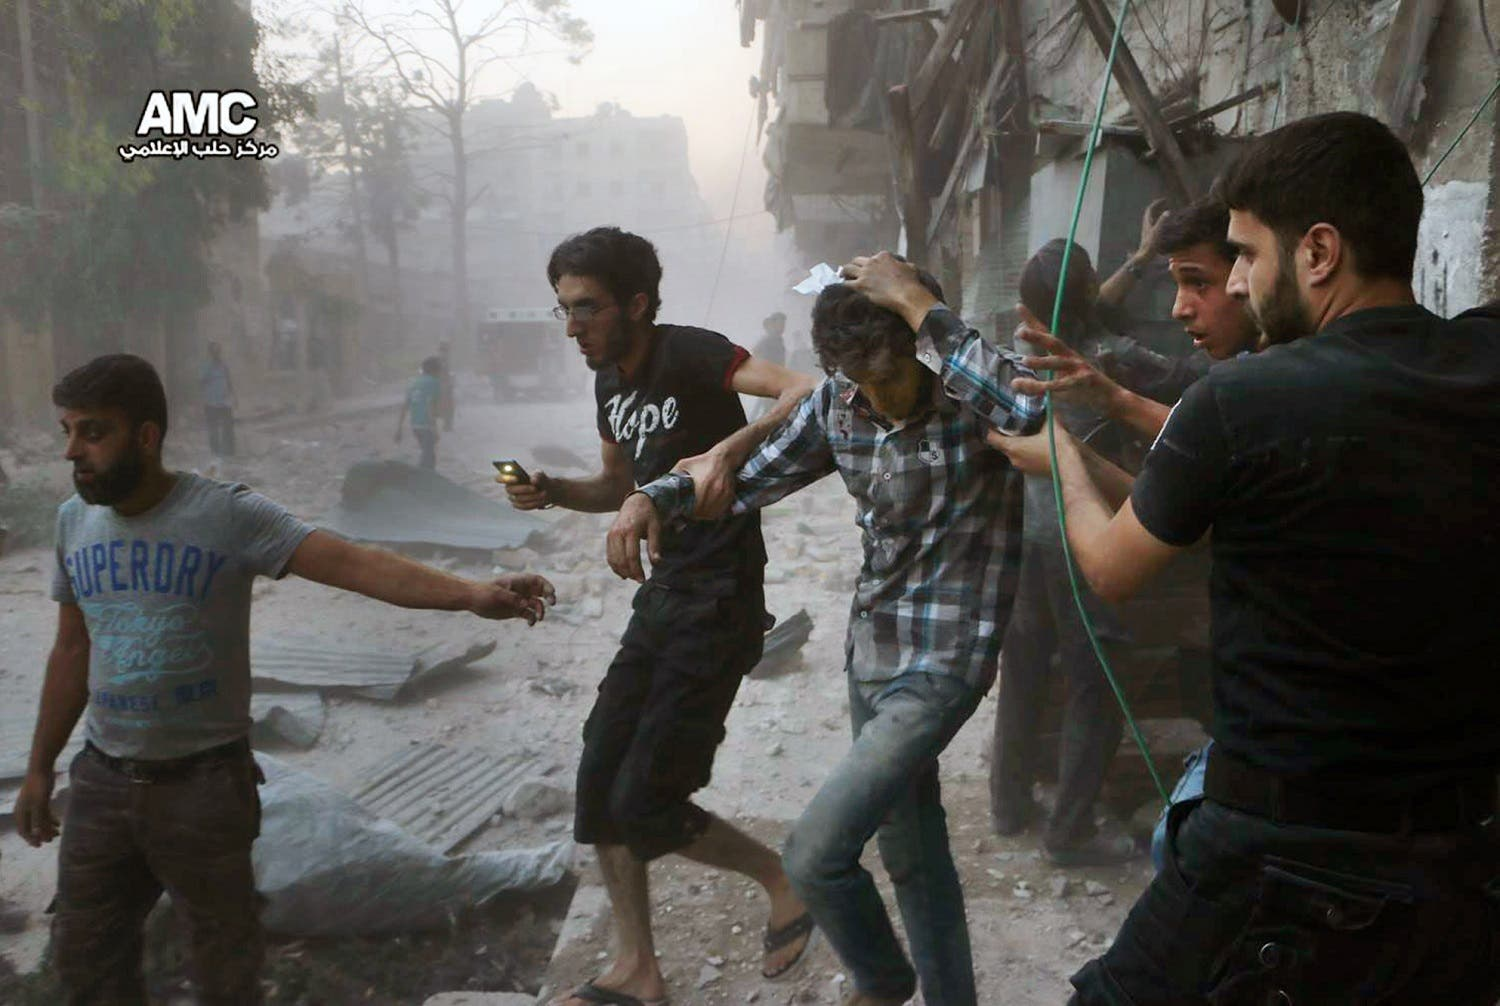 In this Sunday, July. 31, 2016 photo, provided by the Syrian anti-government activist group Aleppo Media Center (AMC), shows Syrians help an injured man, center, after airstrikes hit Aleppo, Syria (File Photo: Aleppo Media Center via AP)